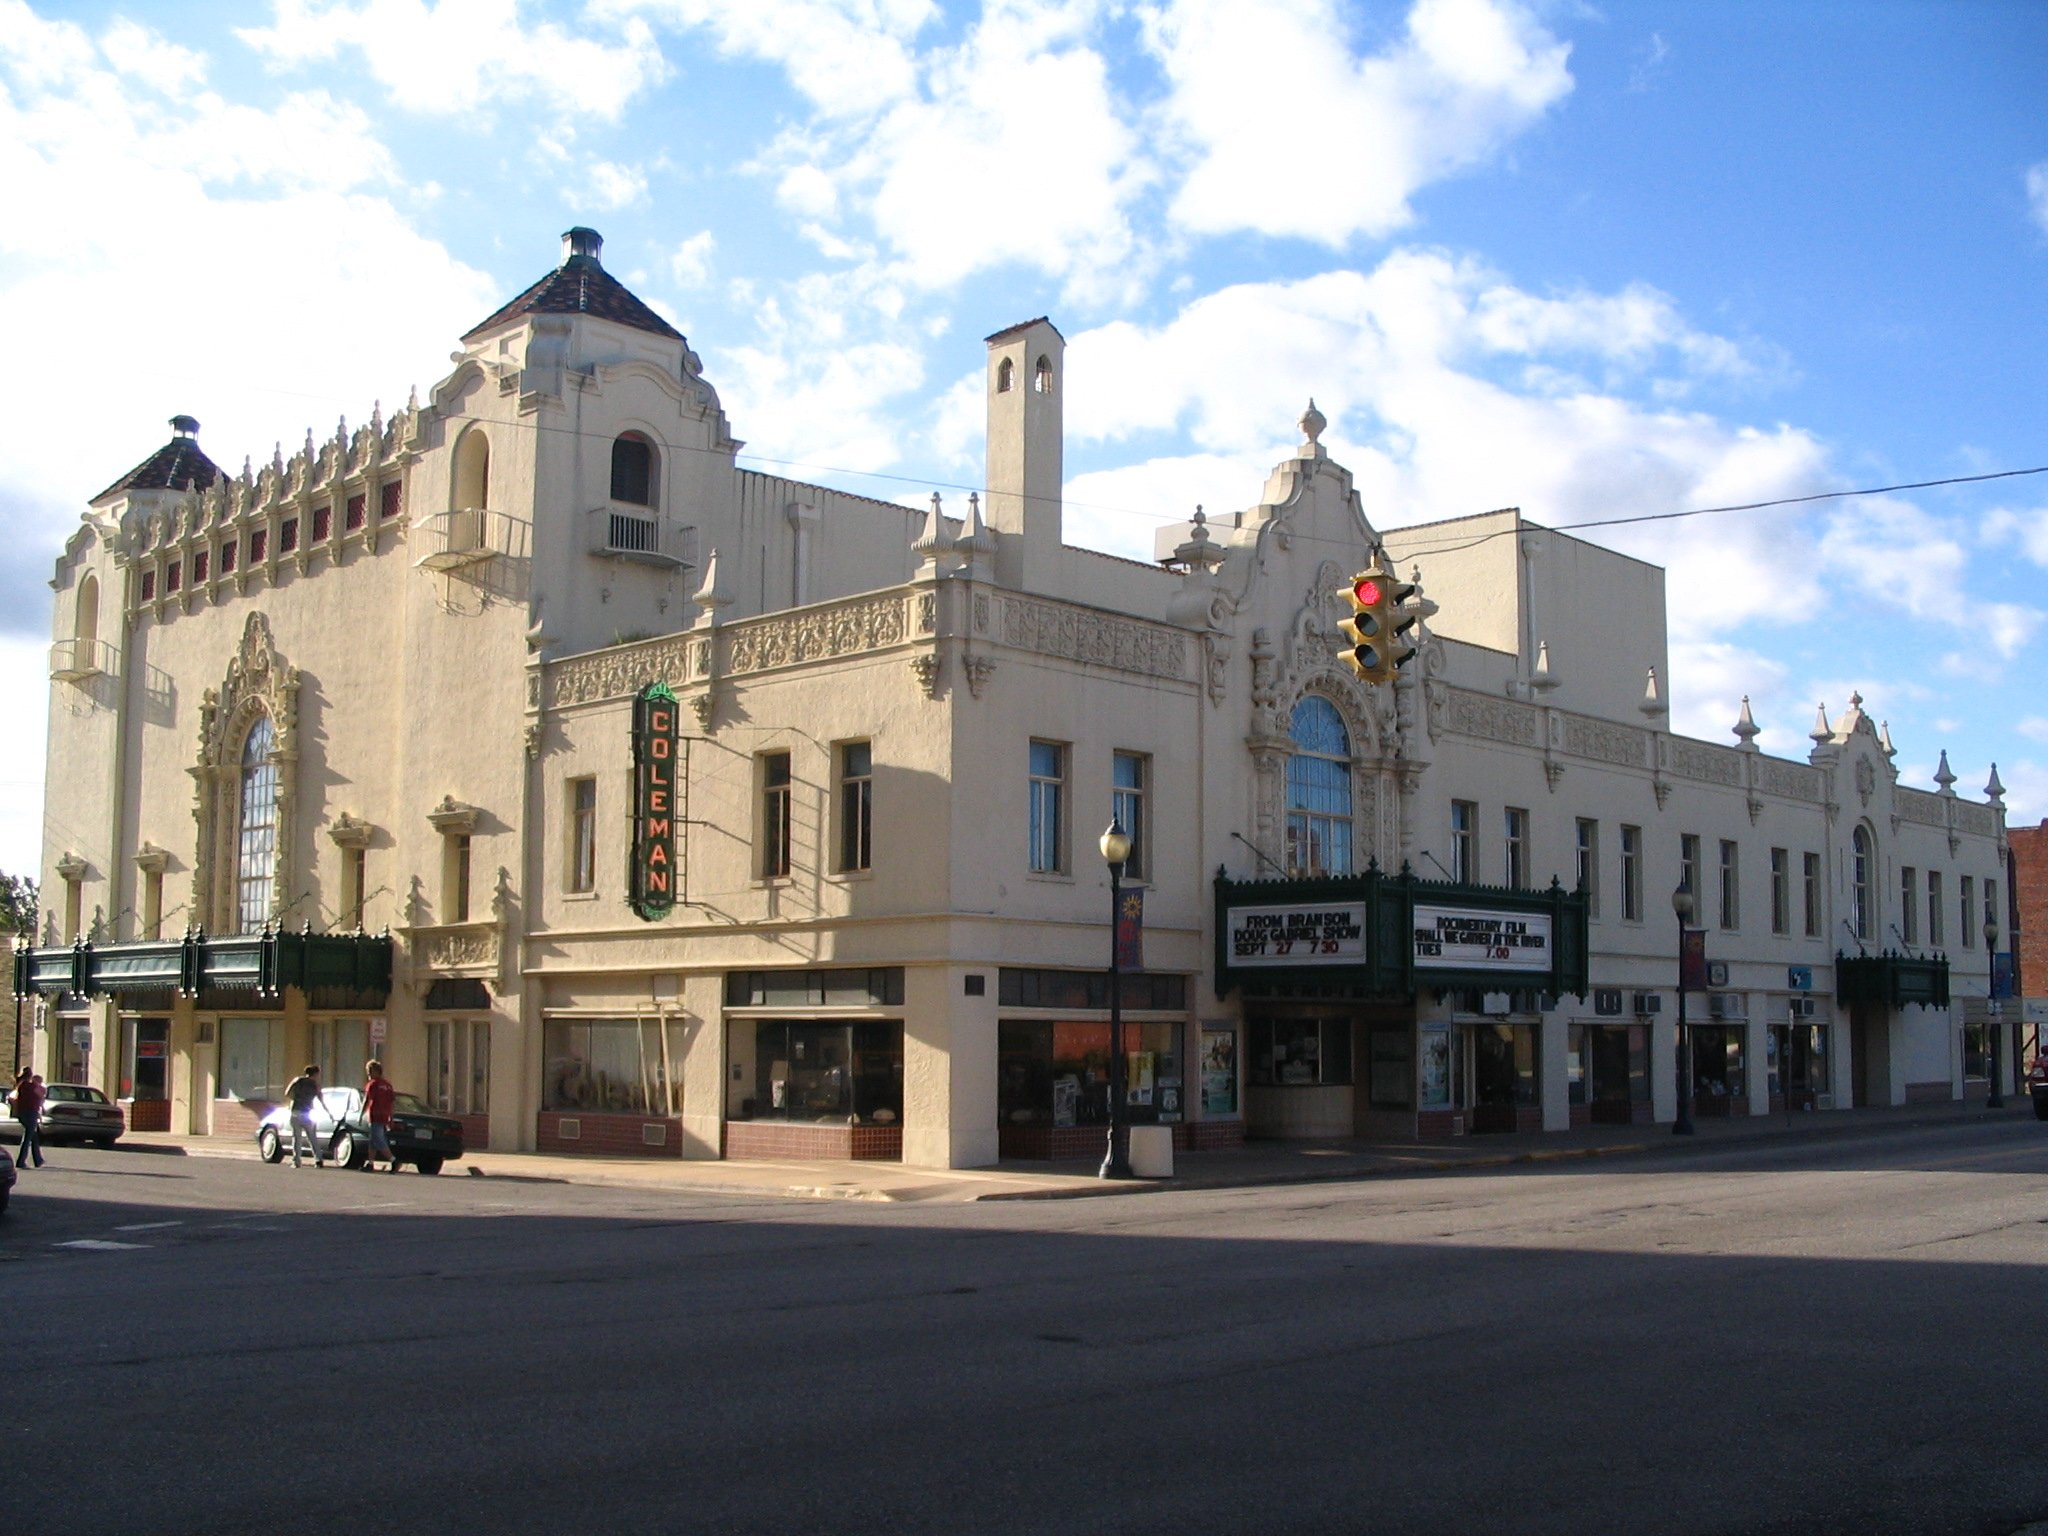 The exterior of the Coleman Theater as viewed from the southeast on North Main St.